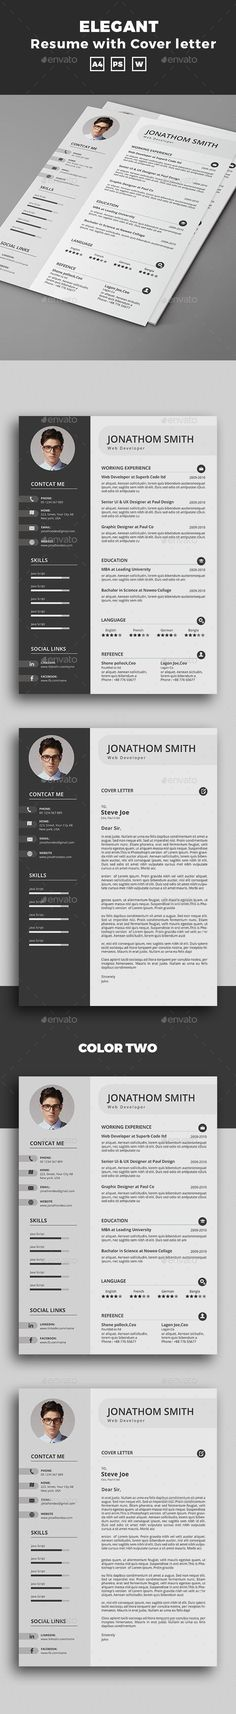 dj resume template resumes pinterest template resume cv and